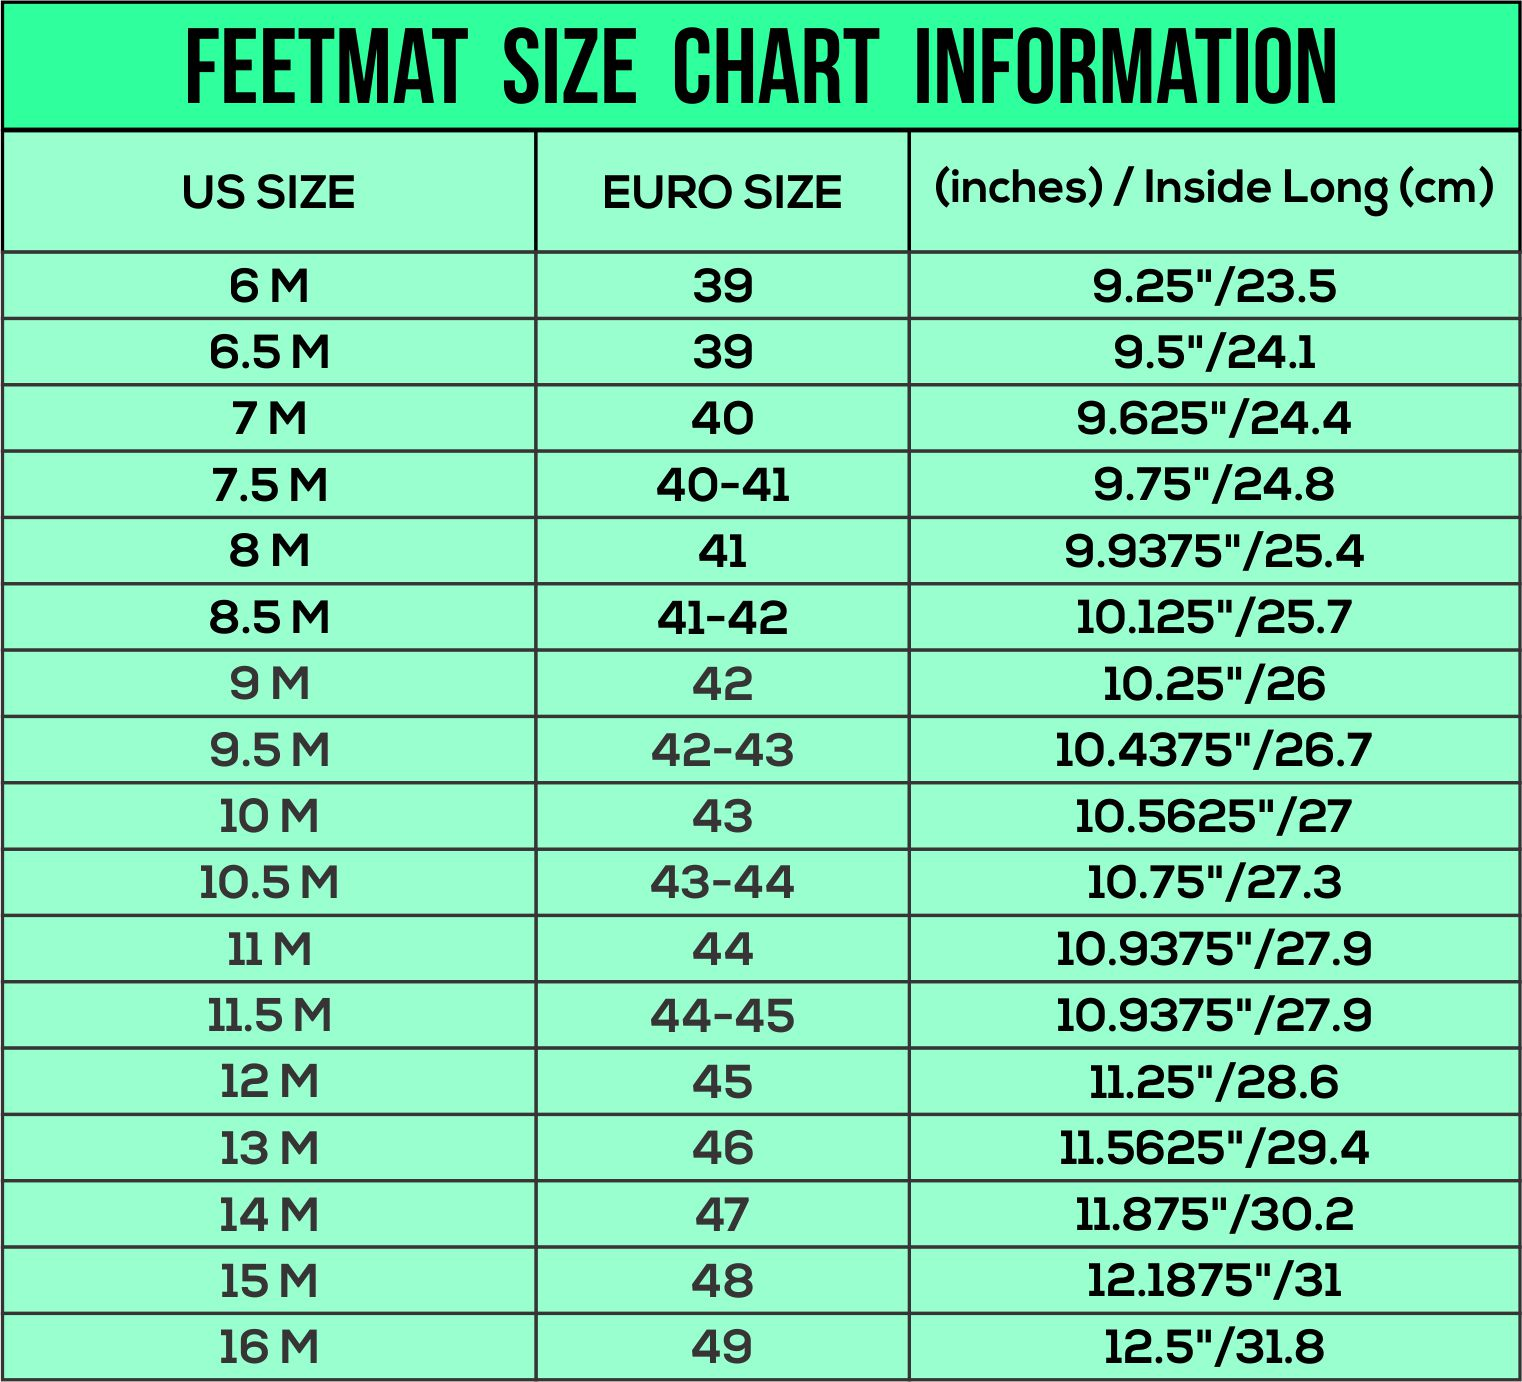 feetmat size chart information US SIZE, EURO SIZE, INCHES/CM SIZE